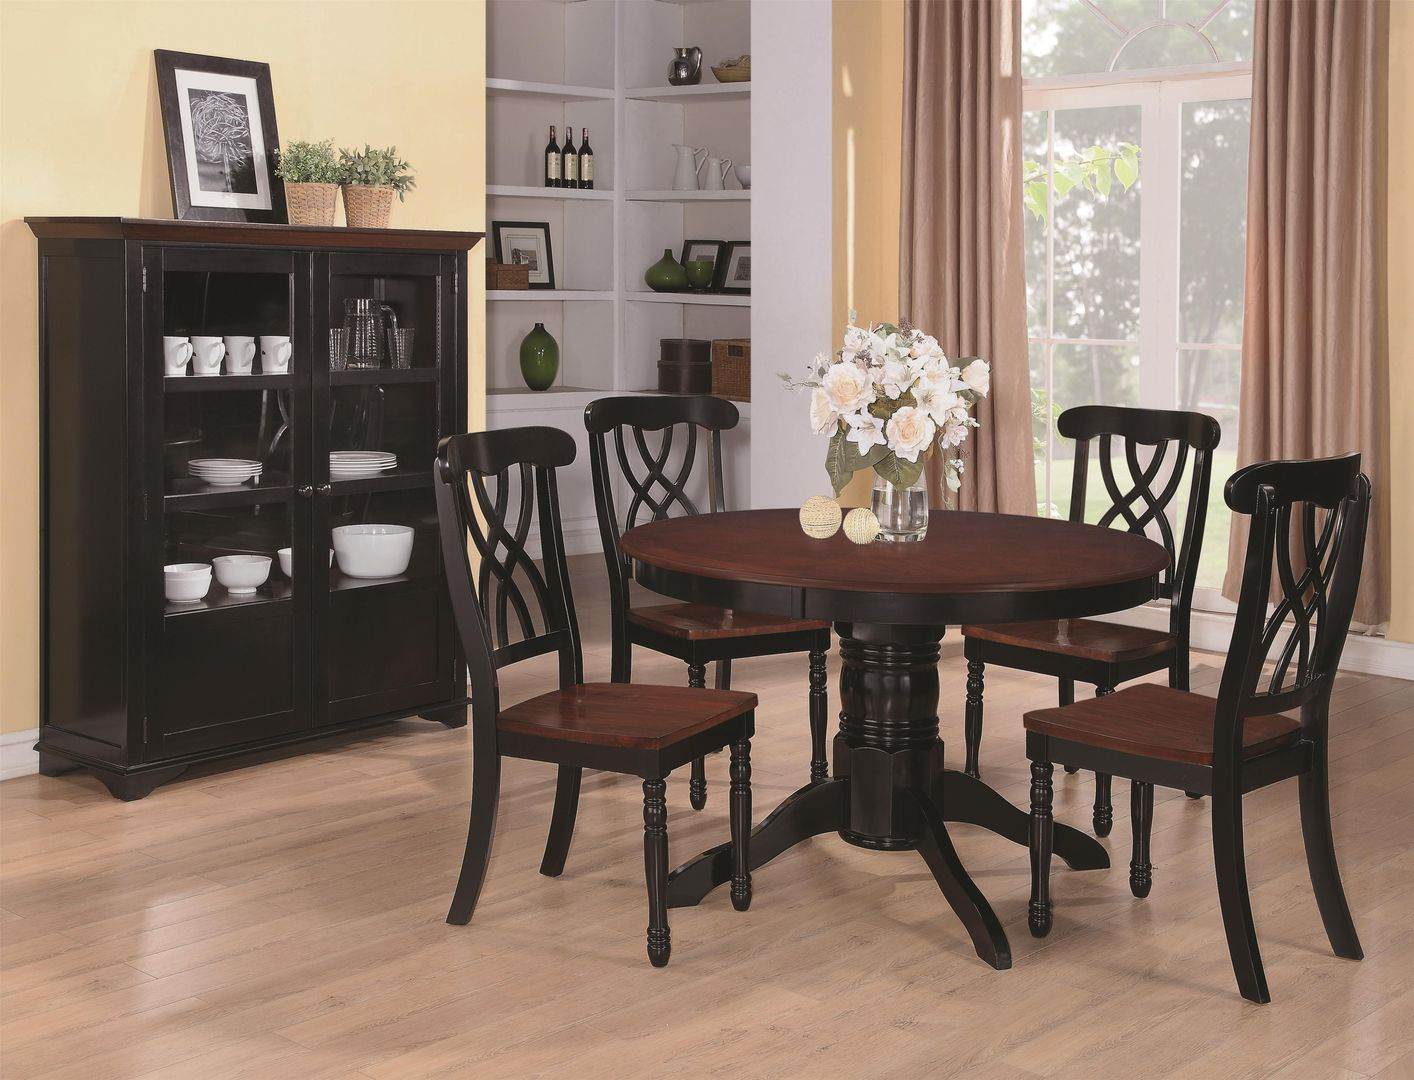 Coaster Addison 103700 Black Wood Dining Table In Los